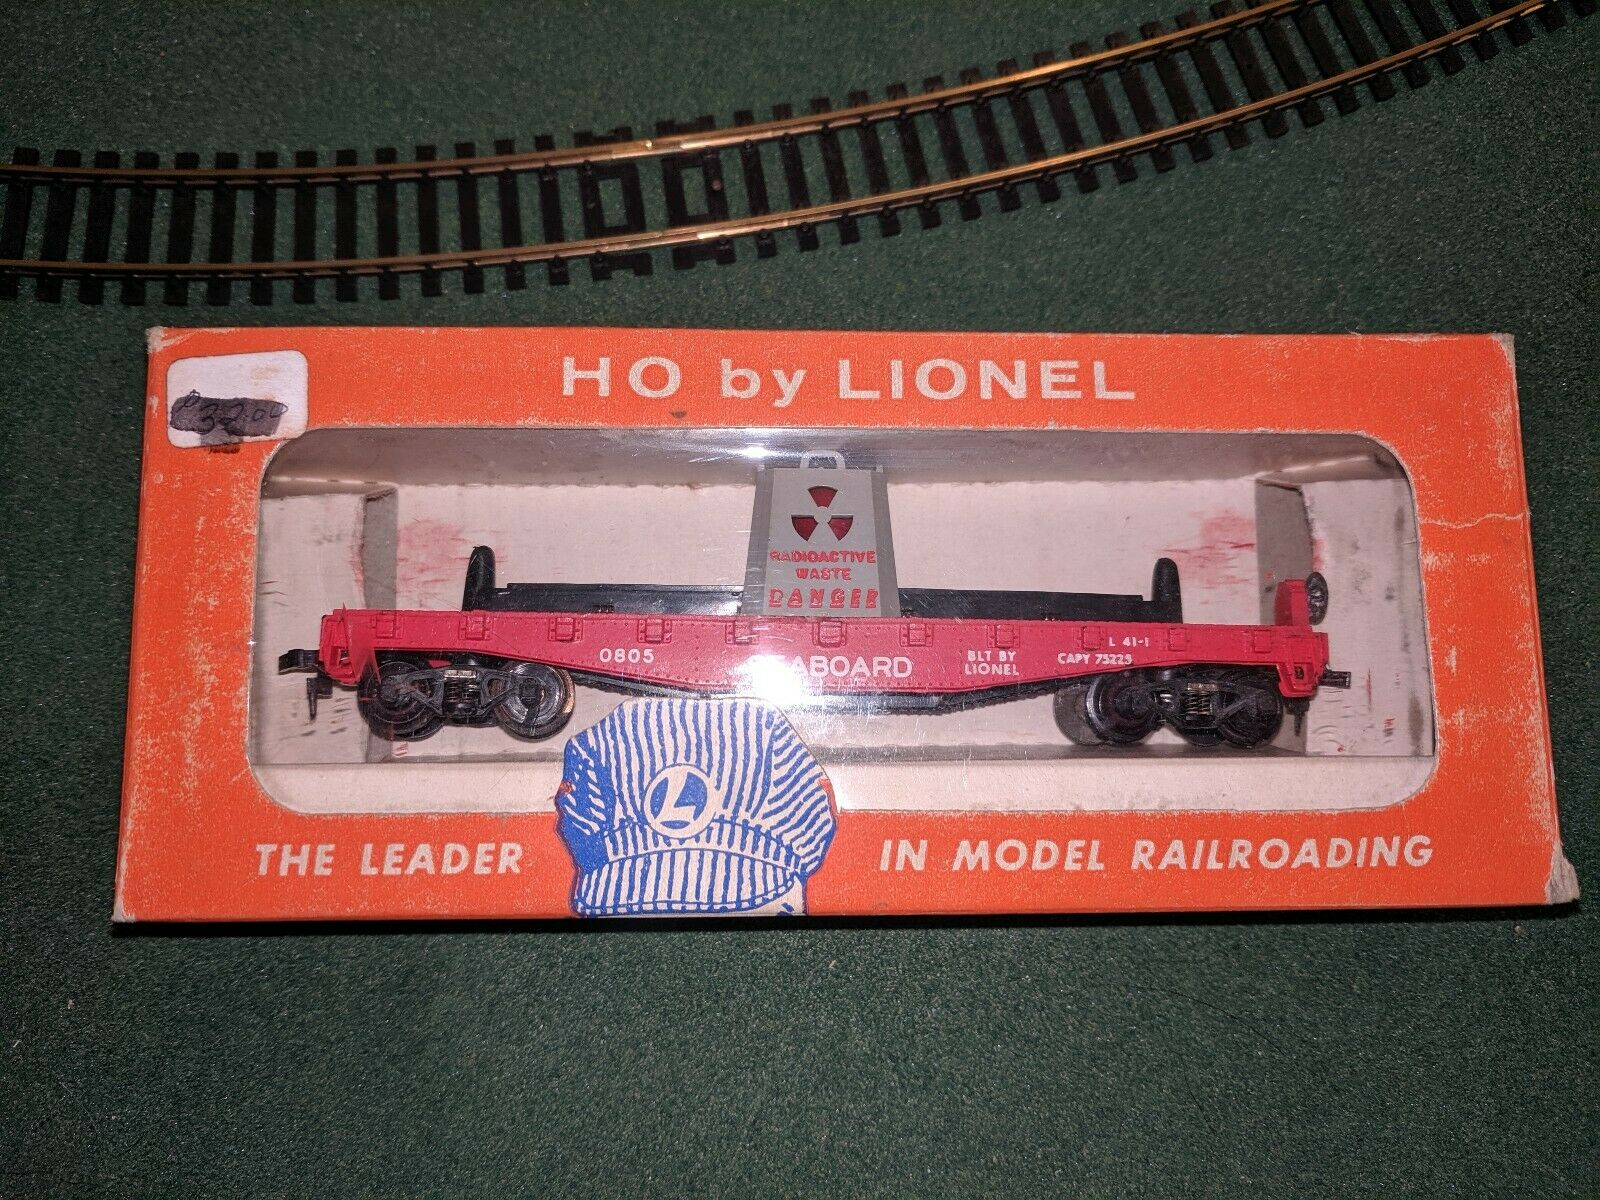 RARE LIONEL HO SCALE 0805-1 SEABOARD ILLUMINATED RADIOACTIVE WASTE CAR LNIB